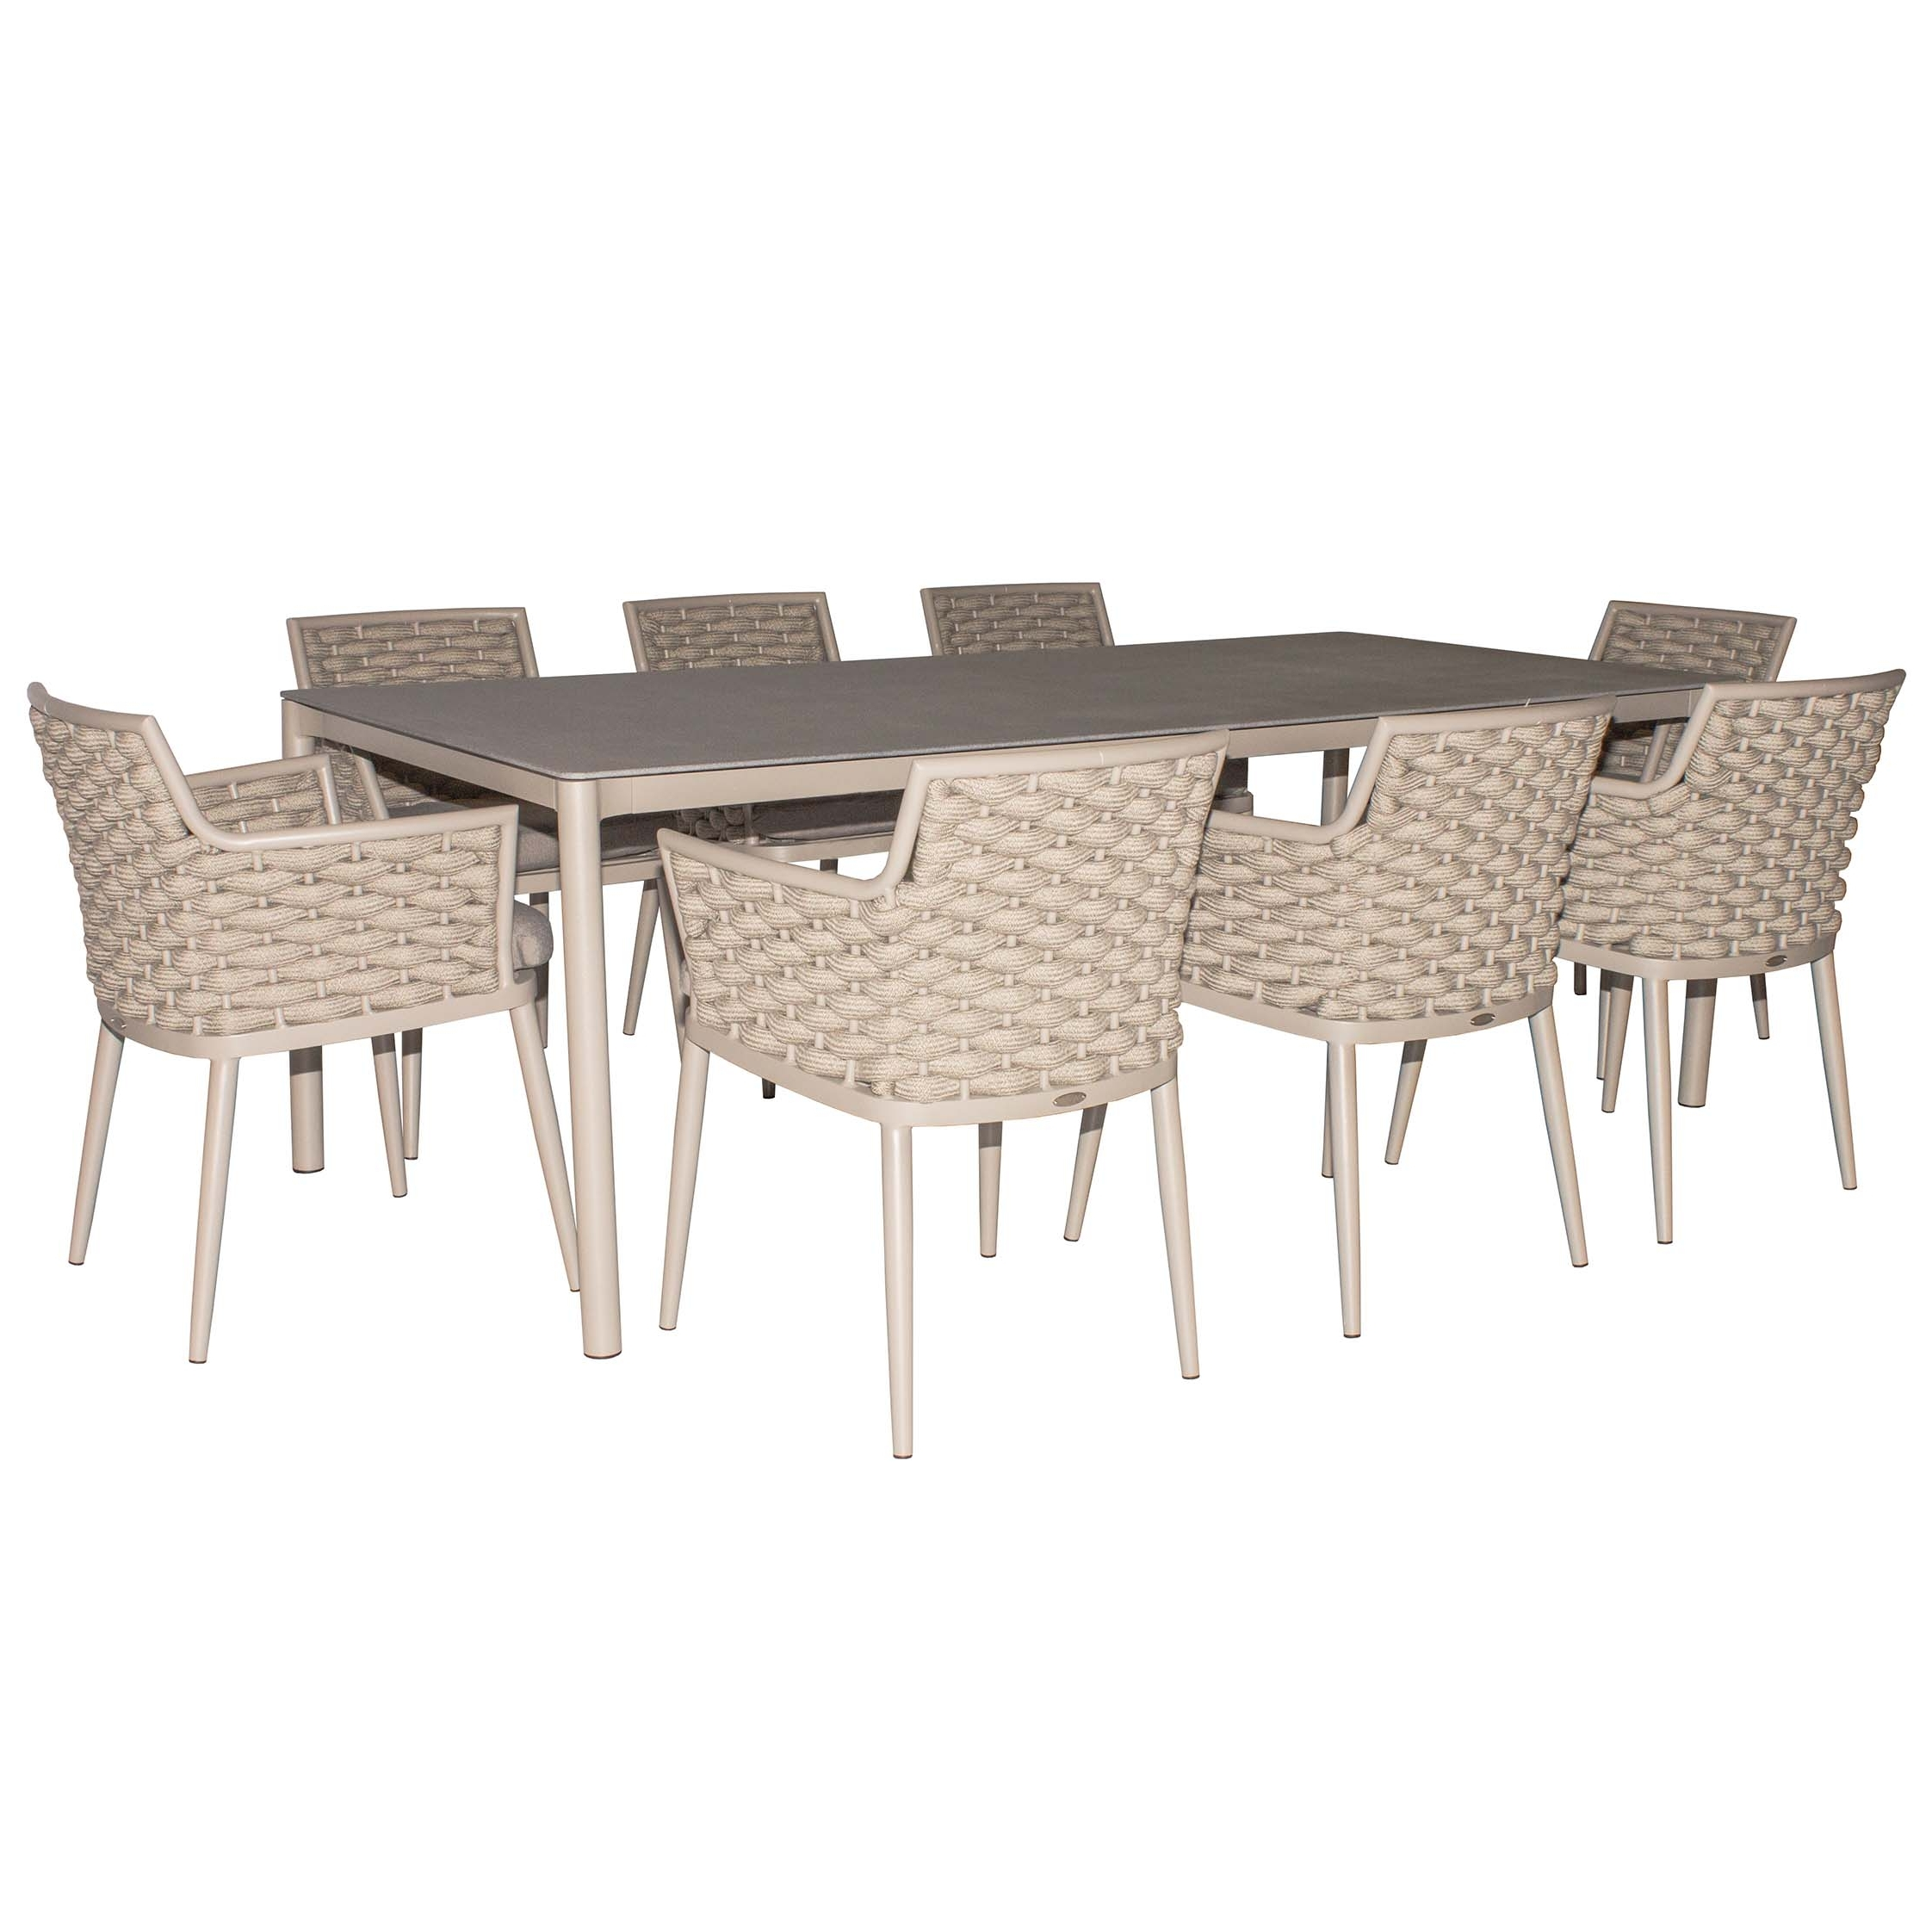 Patio Warehouse Regarding Leon Dining Tables (View 19 of 25)